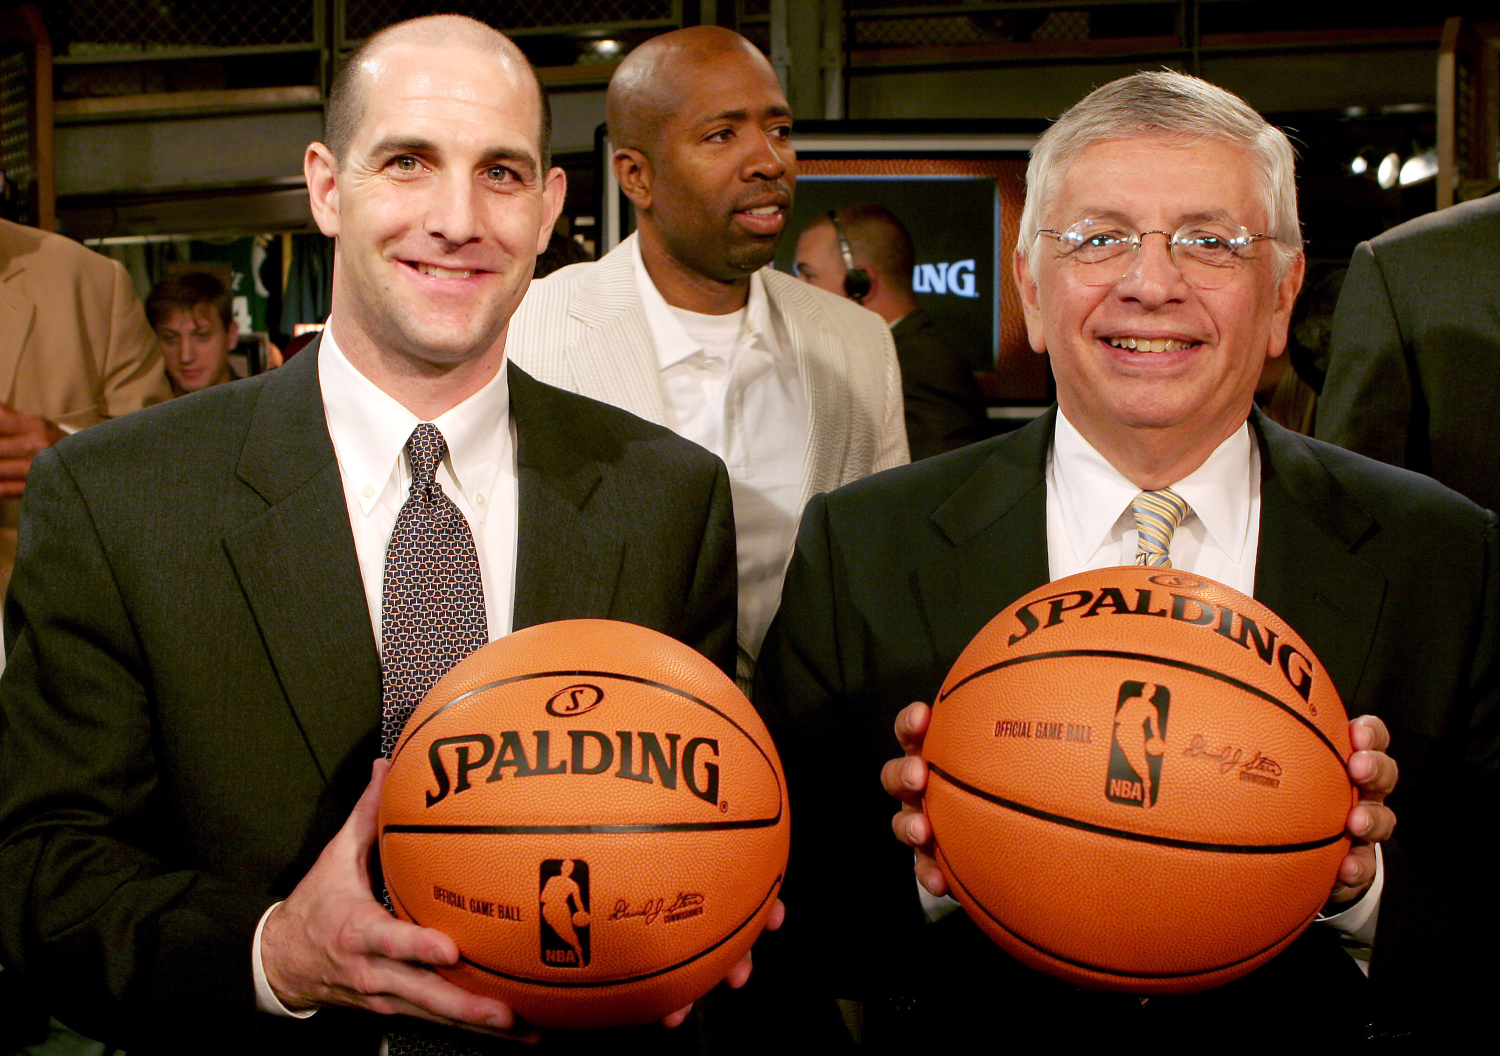 David Stern posing with the NBA ball that he introduced